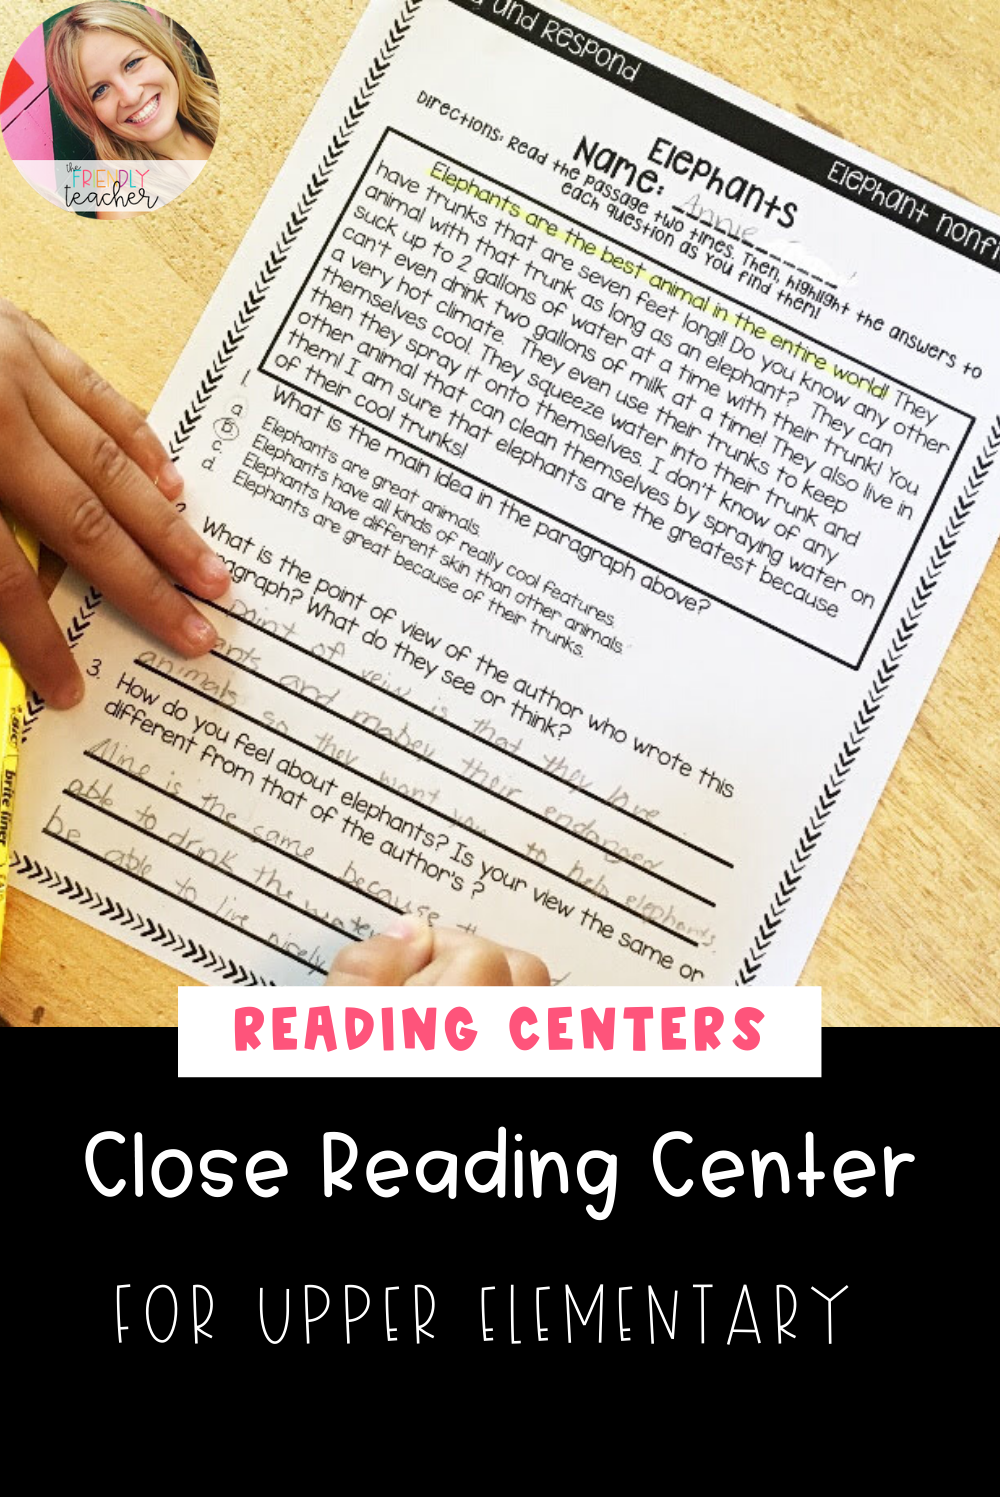 Close Reading Centers for Upper Elementary